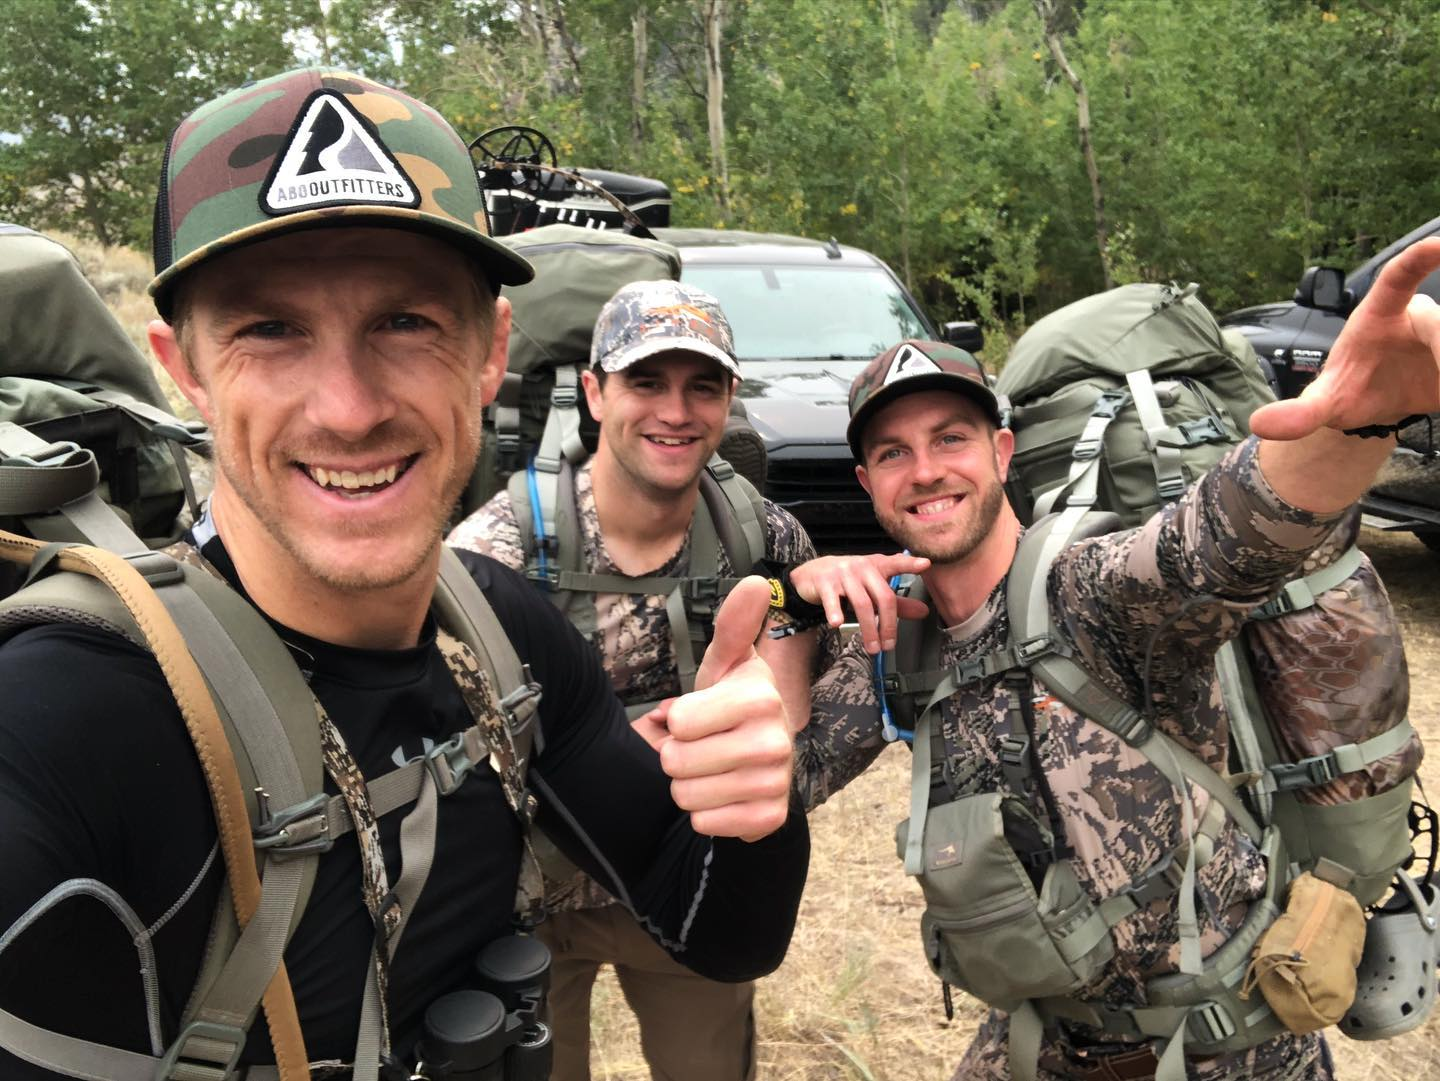 ABO Outfitters Meet the Team